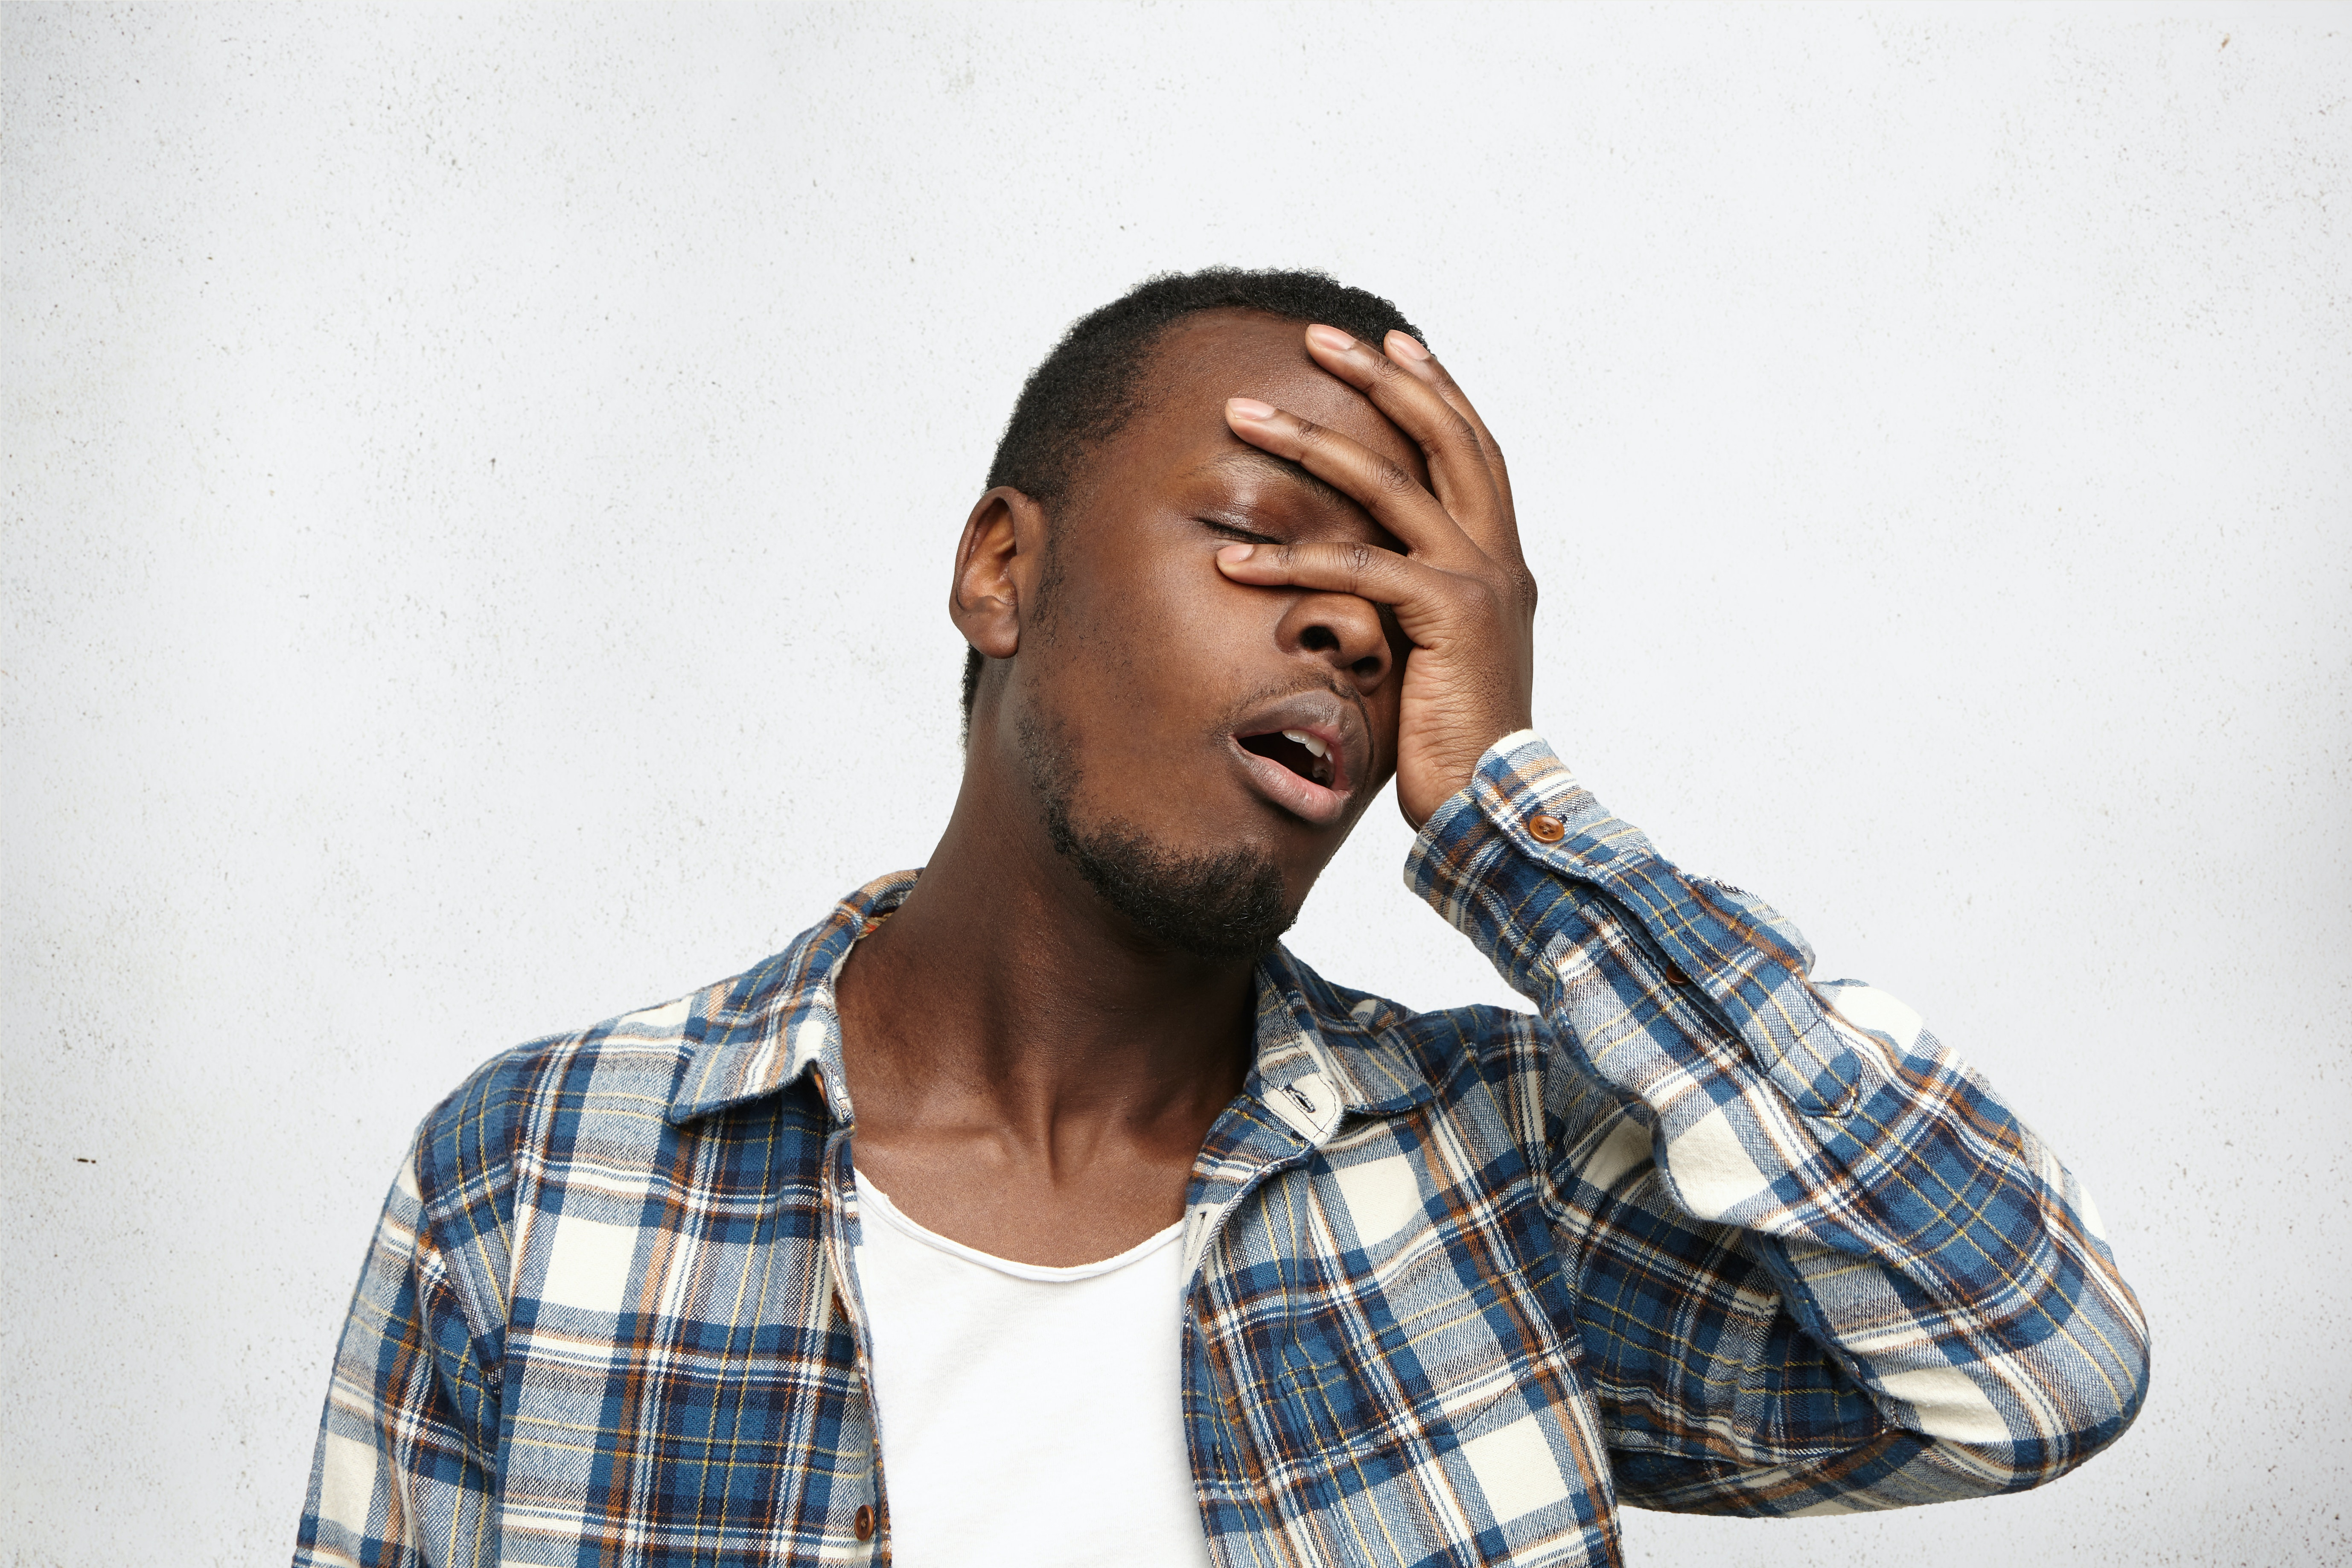 An image depicting a person suffering from forgetfulness symptoms